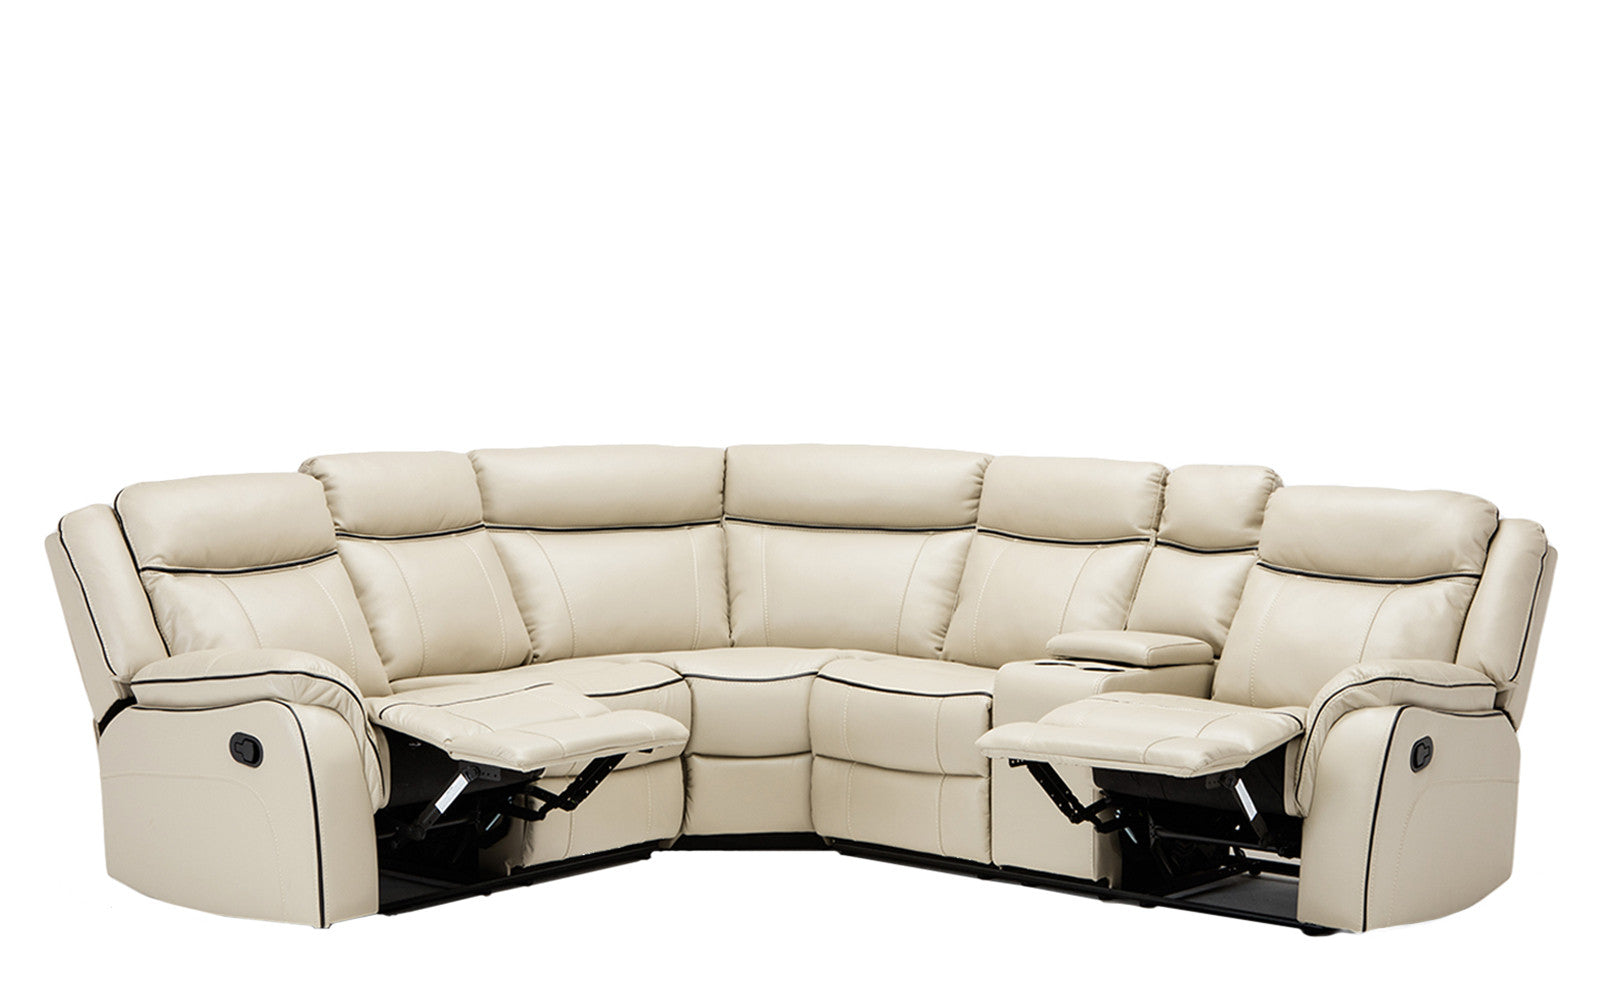 ... Paul Classic Bonded Leather Recliner Sectional In Beige ...  sc 1 st  Sofamania & Paul Classic Bonded Leather Recliner Sectional | Sofamania.com islam-shia.org